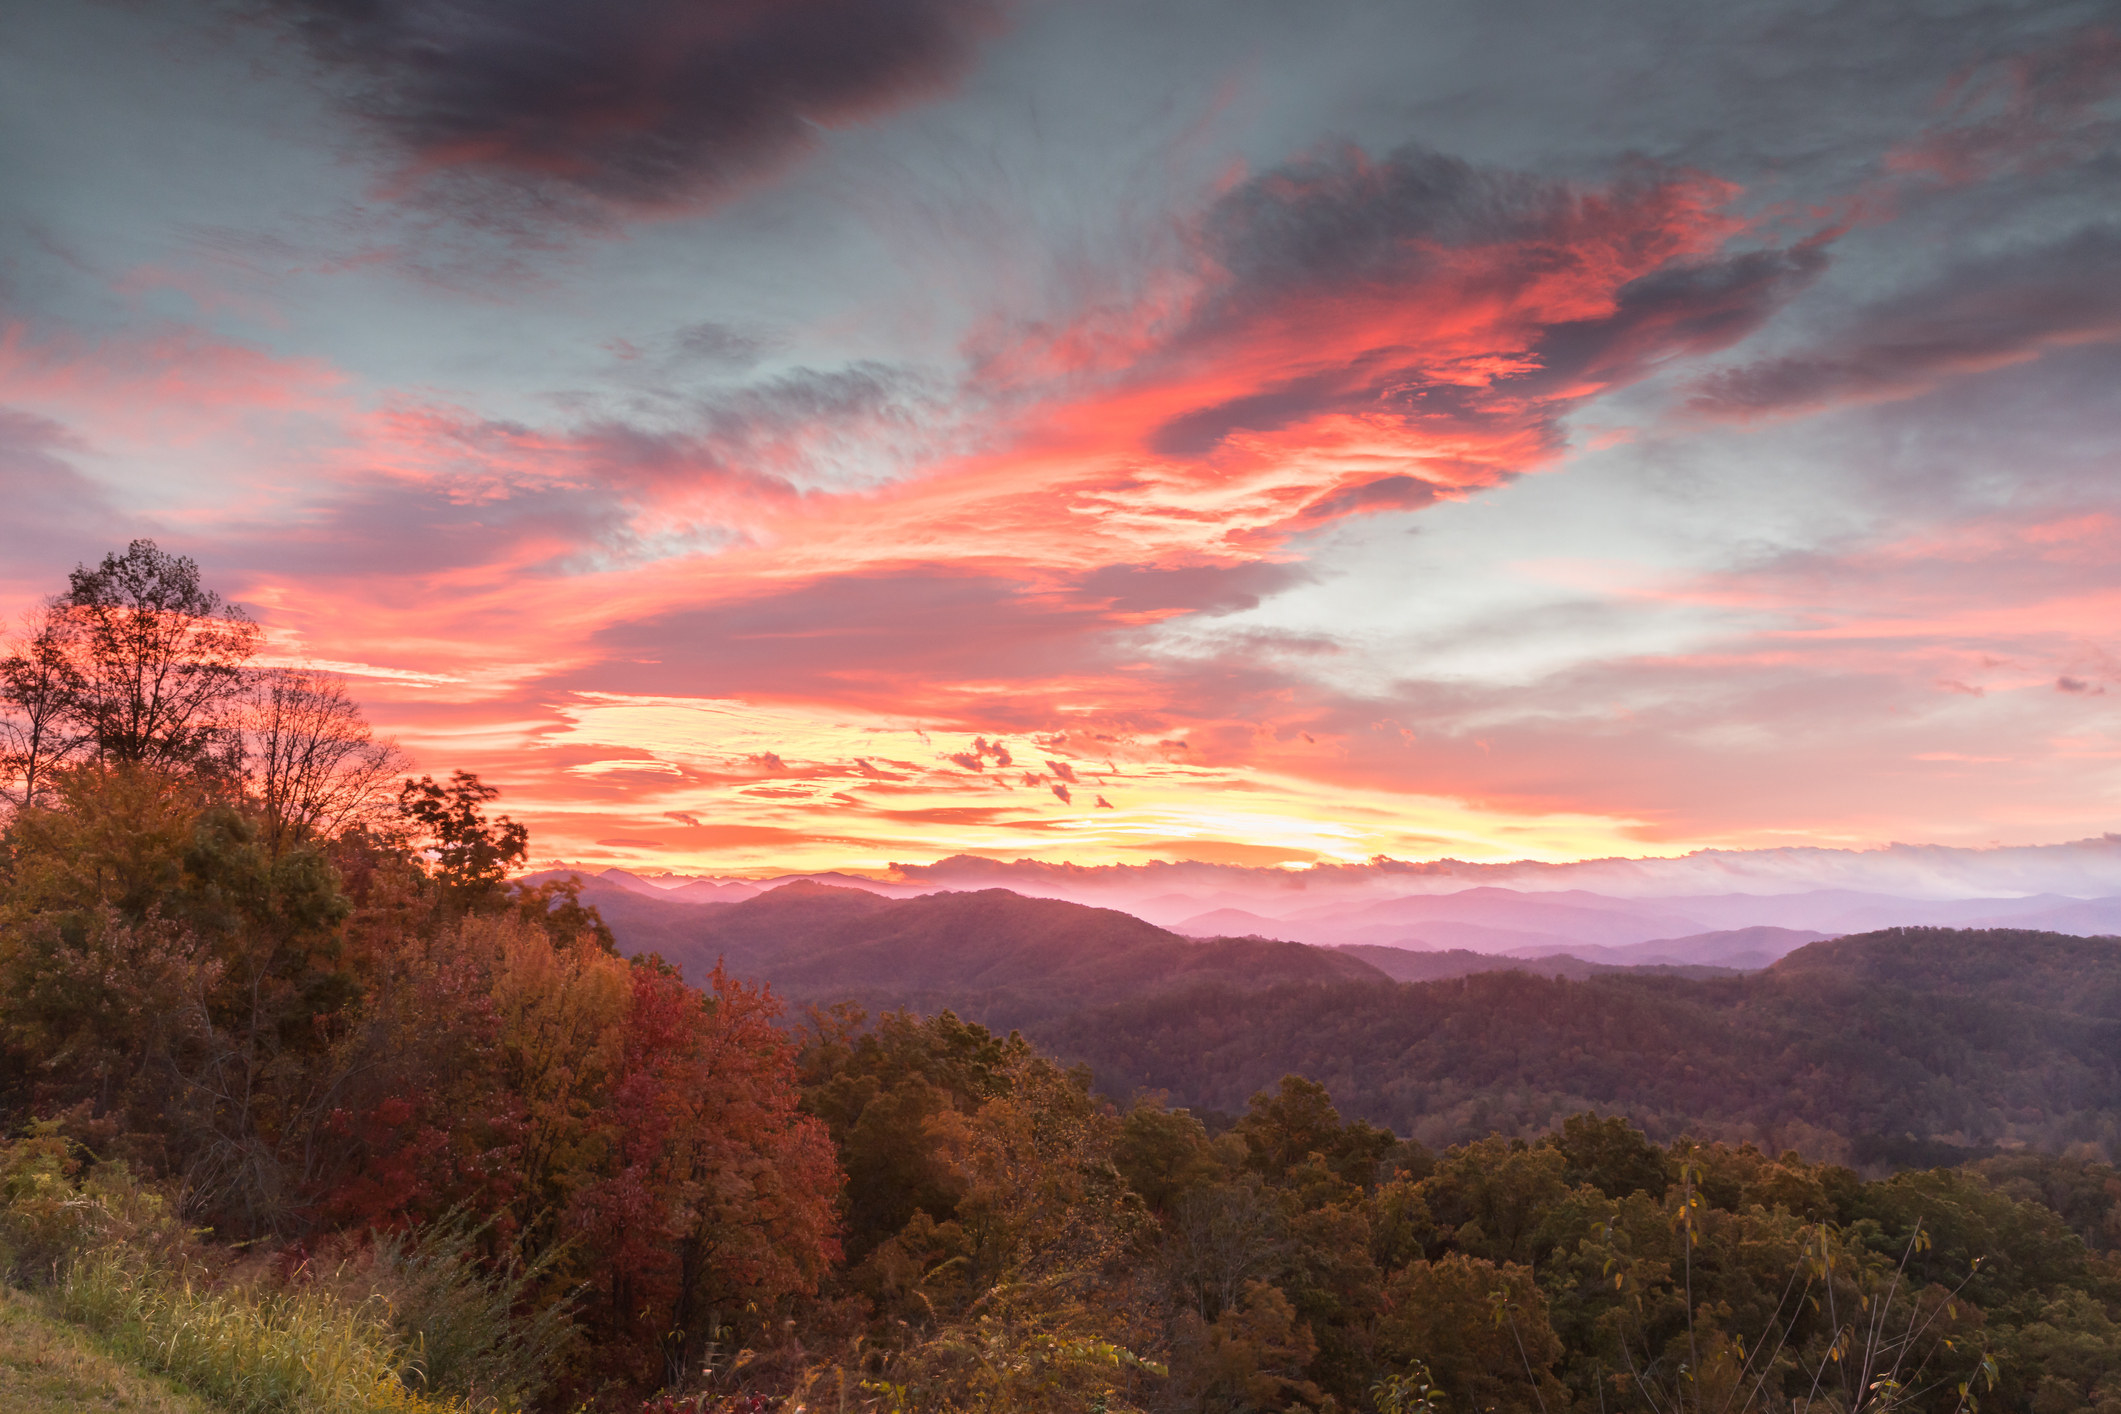 Sunrise inSmokey Mountains National Park, Tennessee.